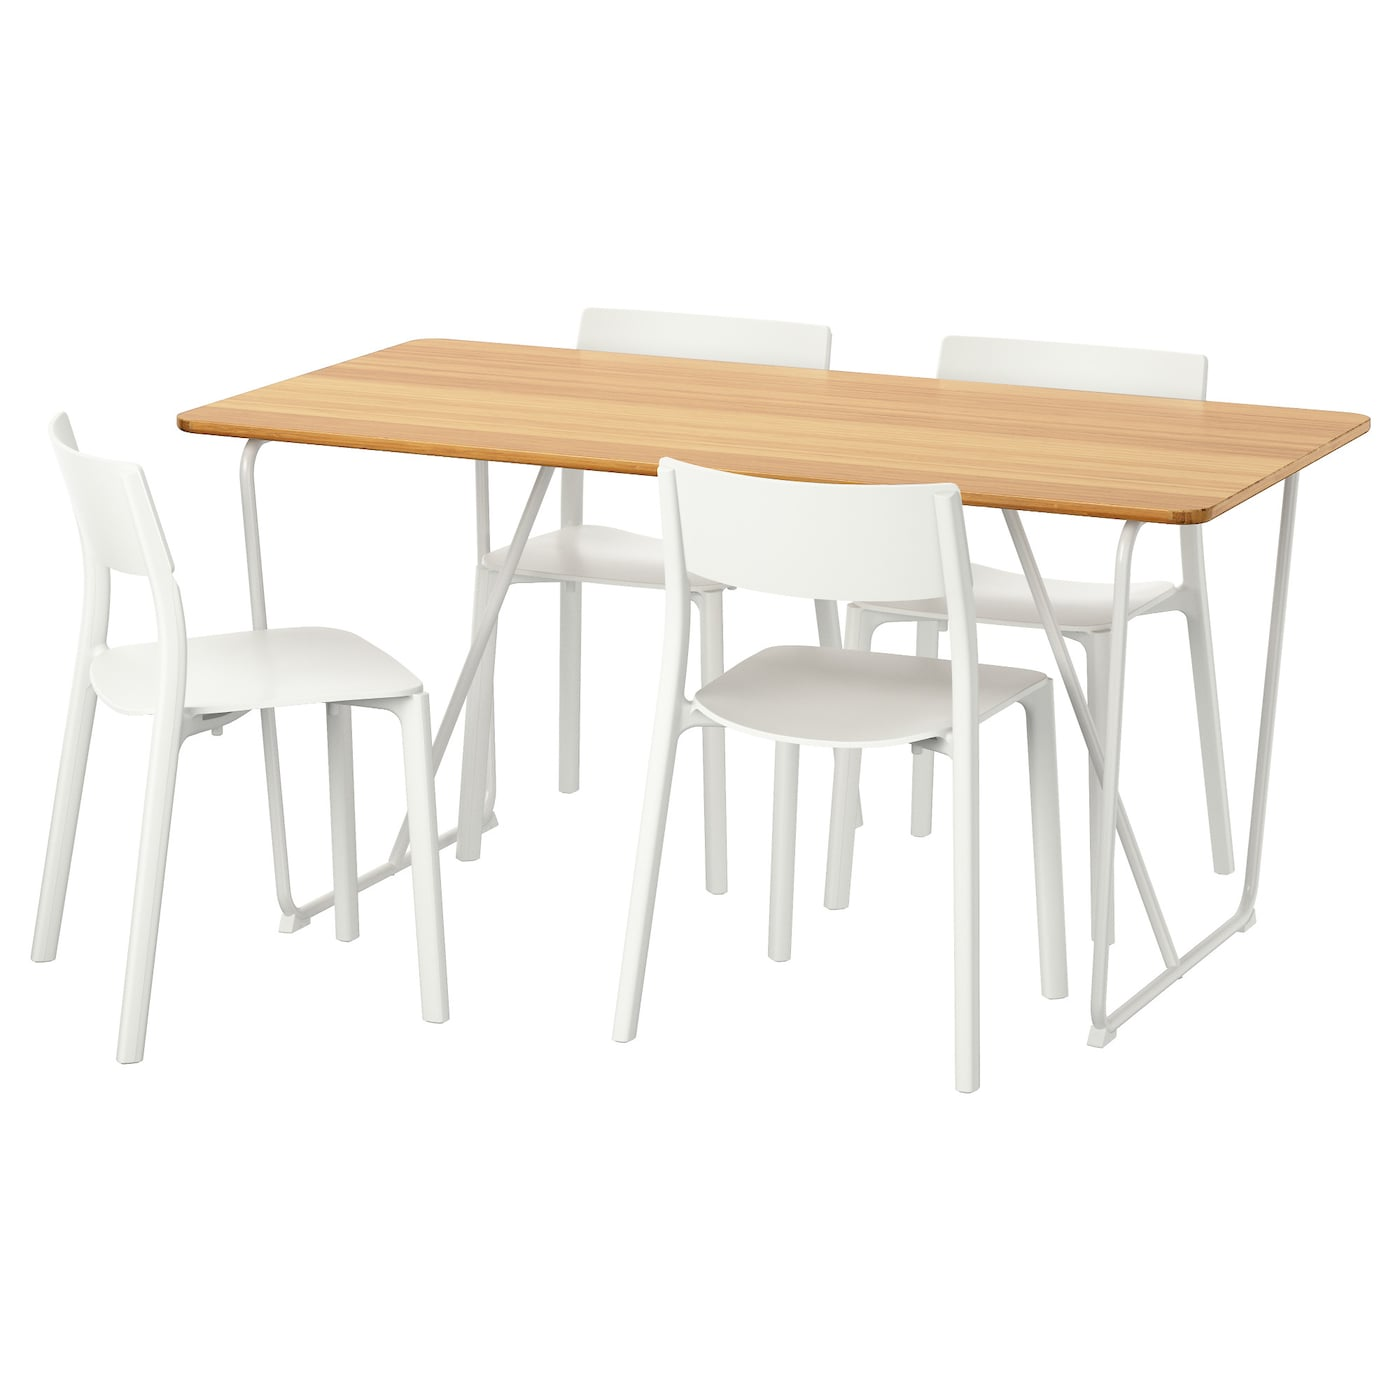 Vraryd janinge table and 4 chairs white bamboo white 150 for Table ikea 4 99